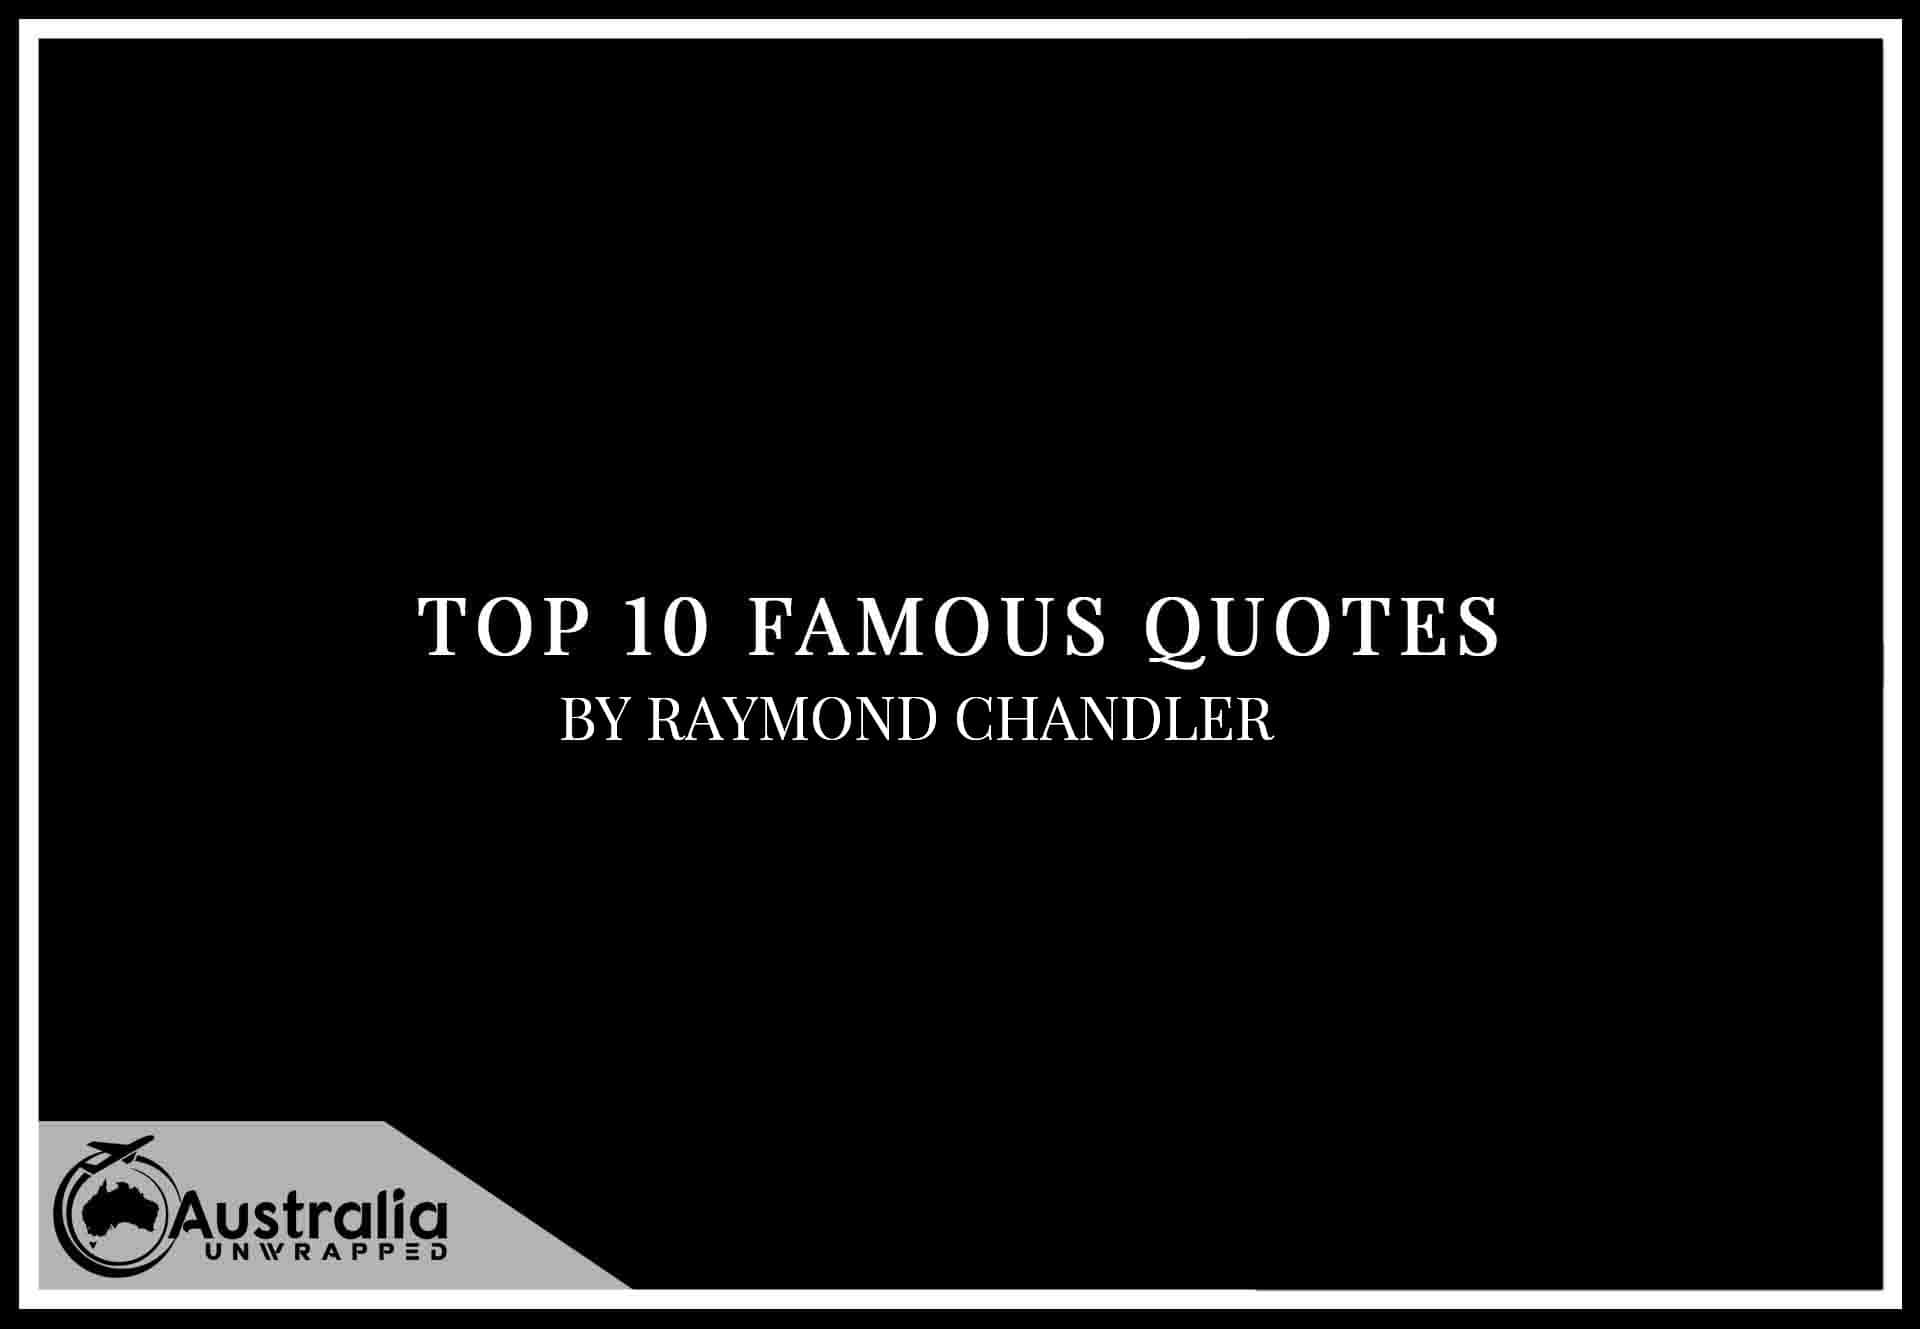 Top 10 Famous Quotes by Author Raymond Chandler